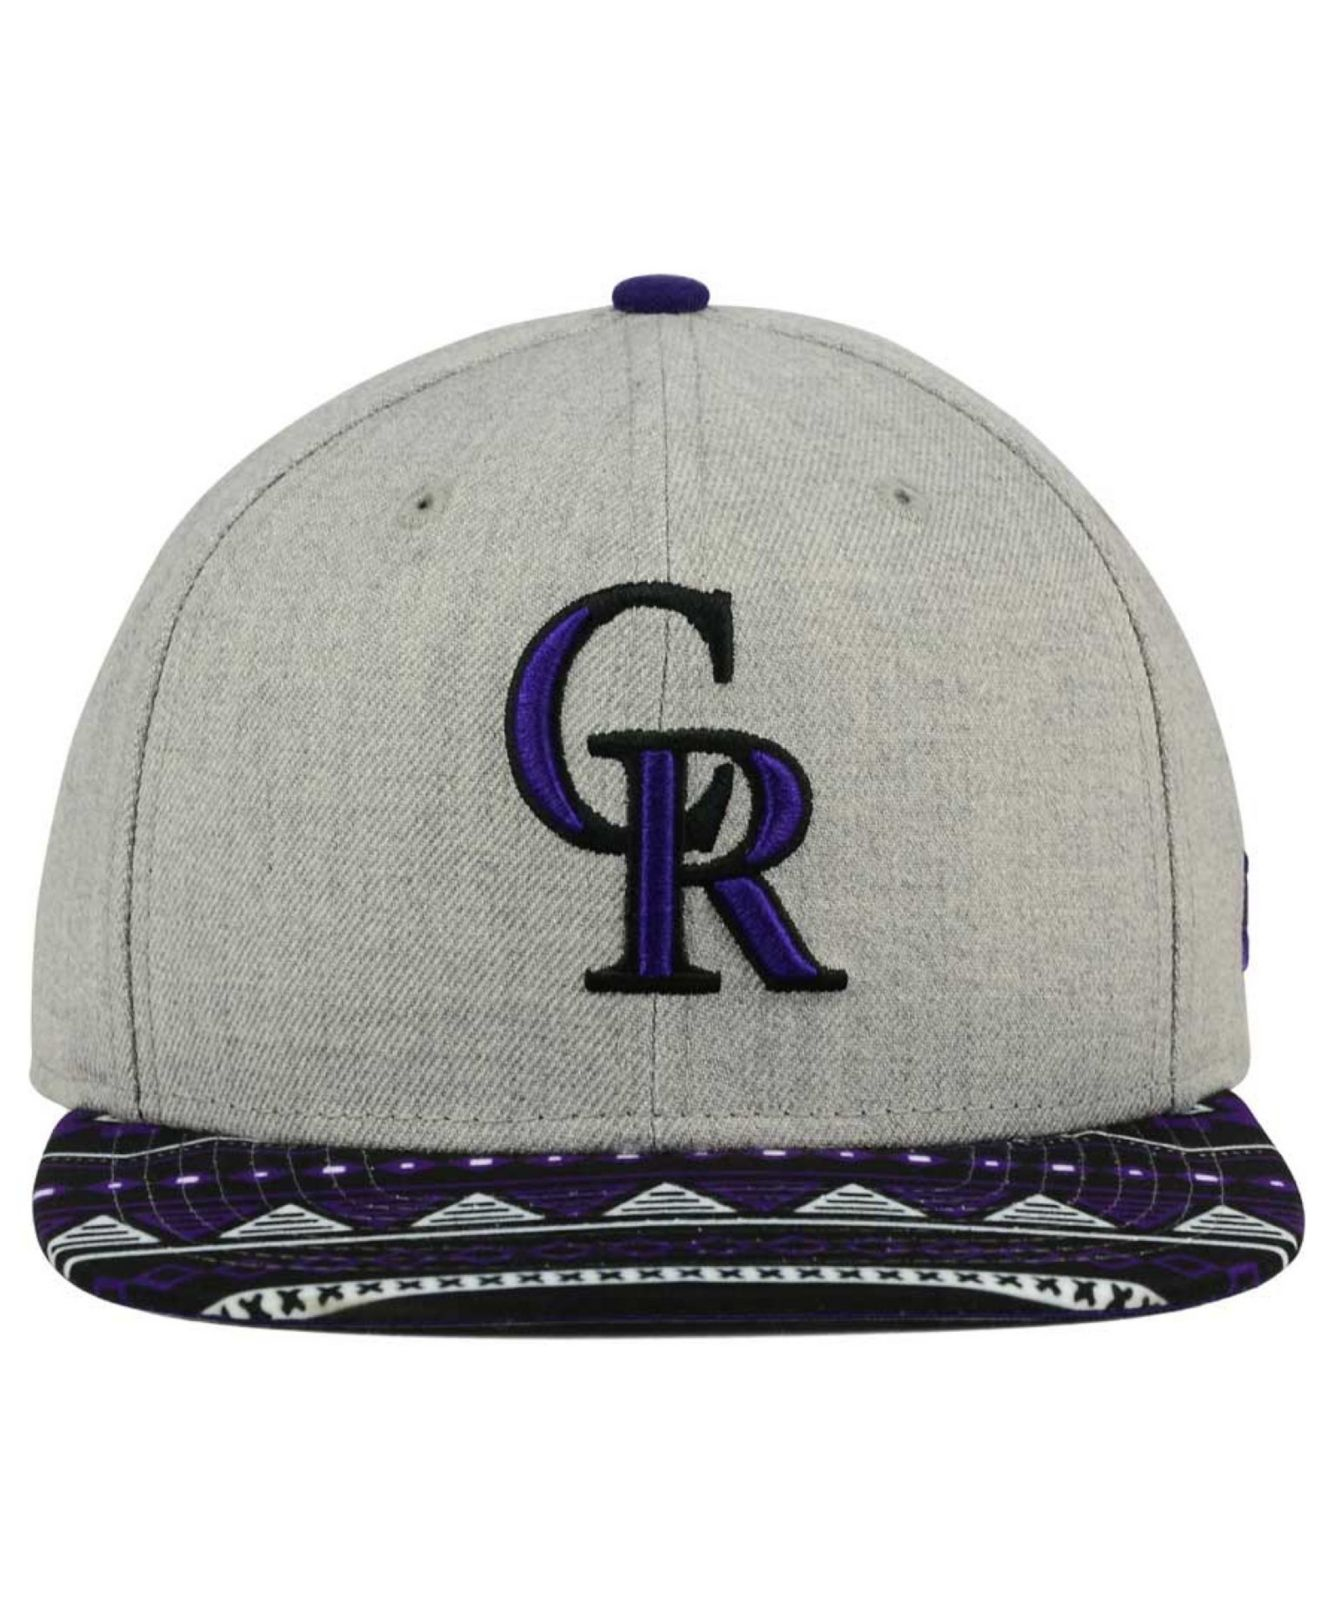 new product f07af e12da best price mlb new york yankees heather hype new era 9fifty heather 77382  5106c  wholesale lyst ktz colorado rockies neon mashup 9fifty snapback cap  in gray ...